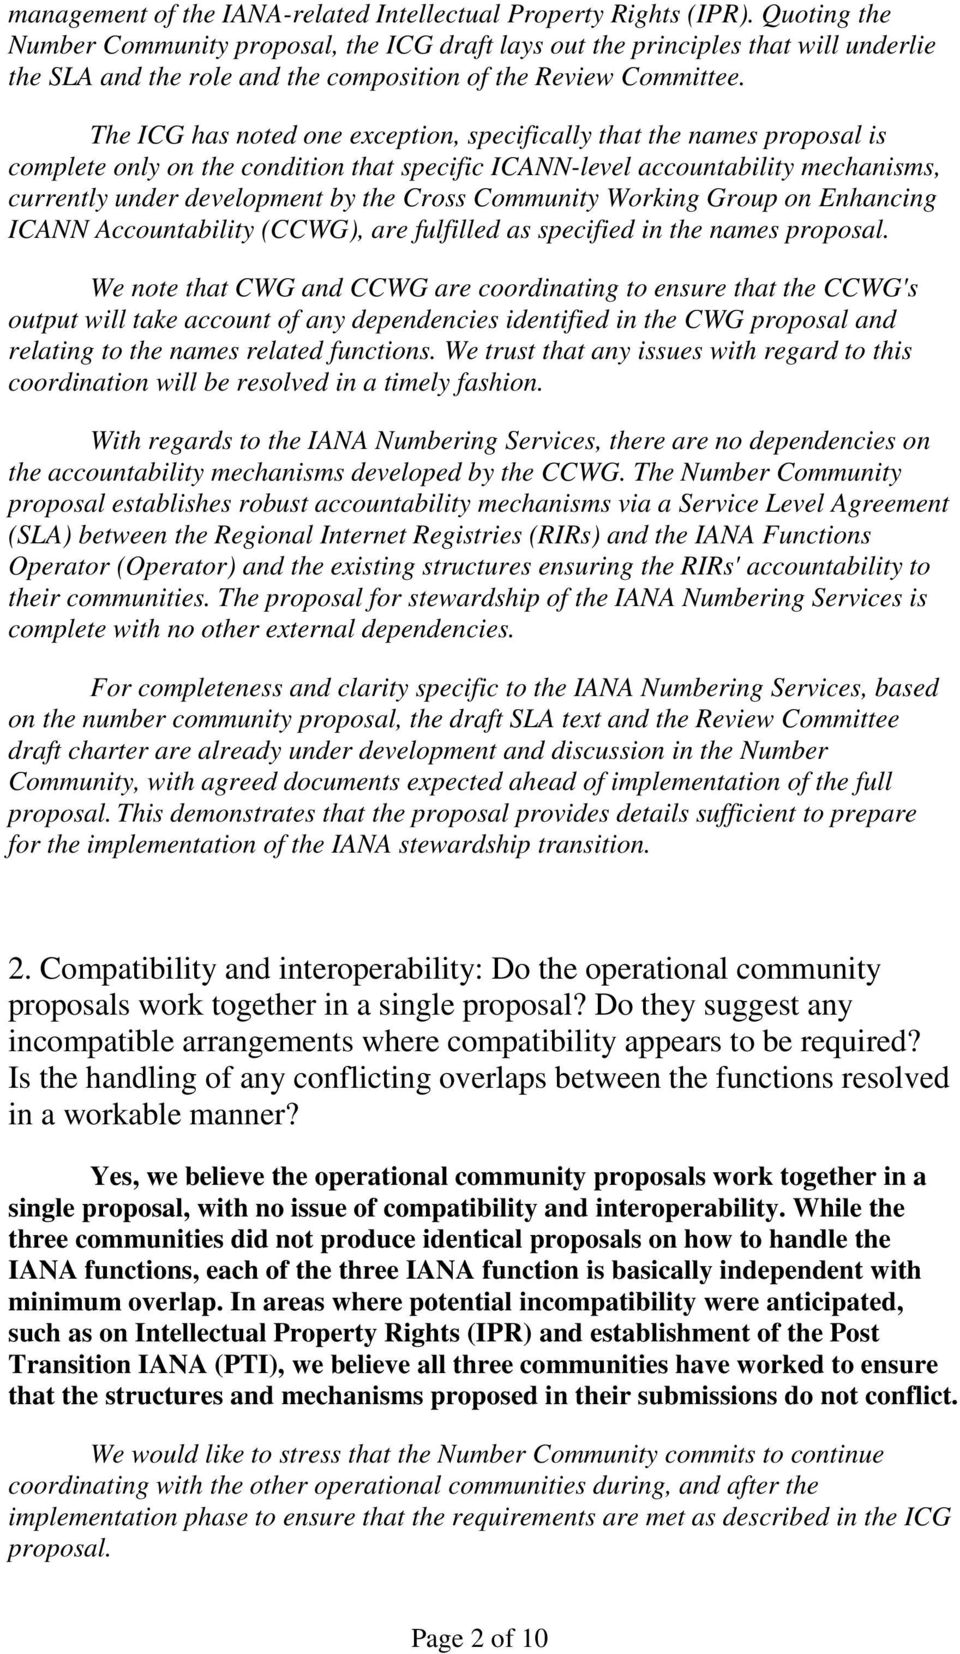 The ICG has noted one exception, specifically that the names proposal is complete only on the condition that specific ICANN-level accountability mechanisms, currently under development by the Cross